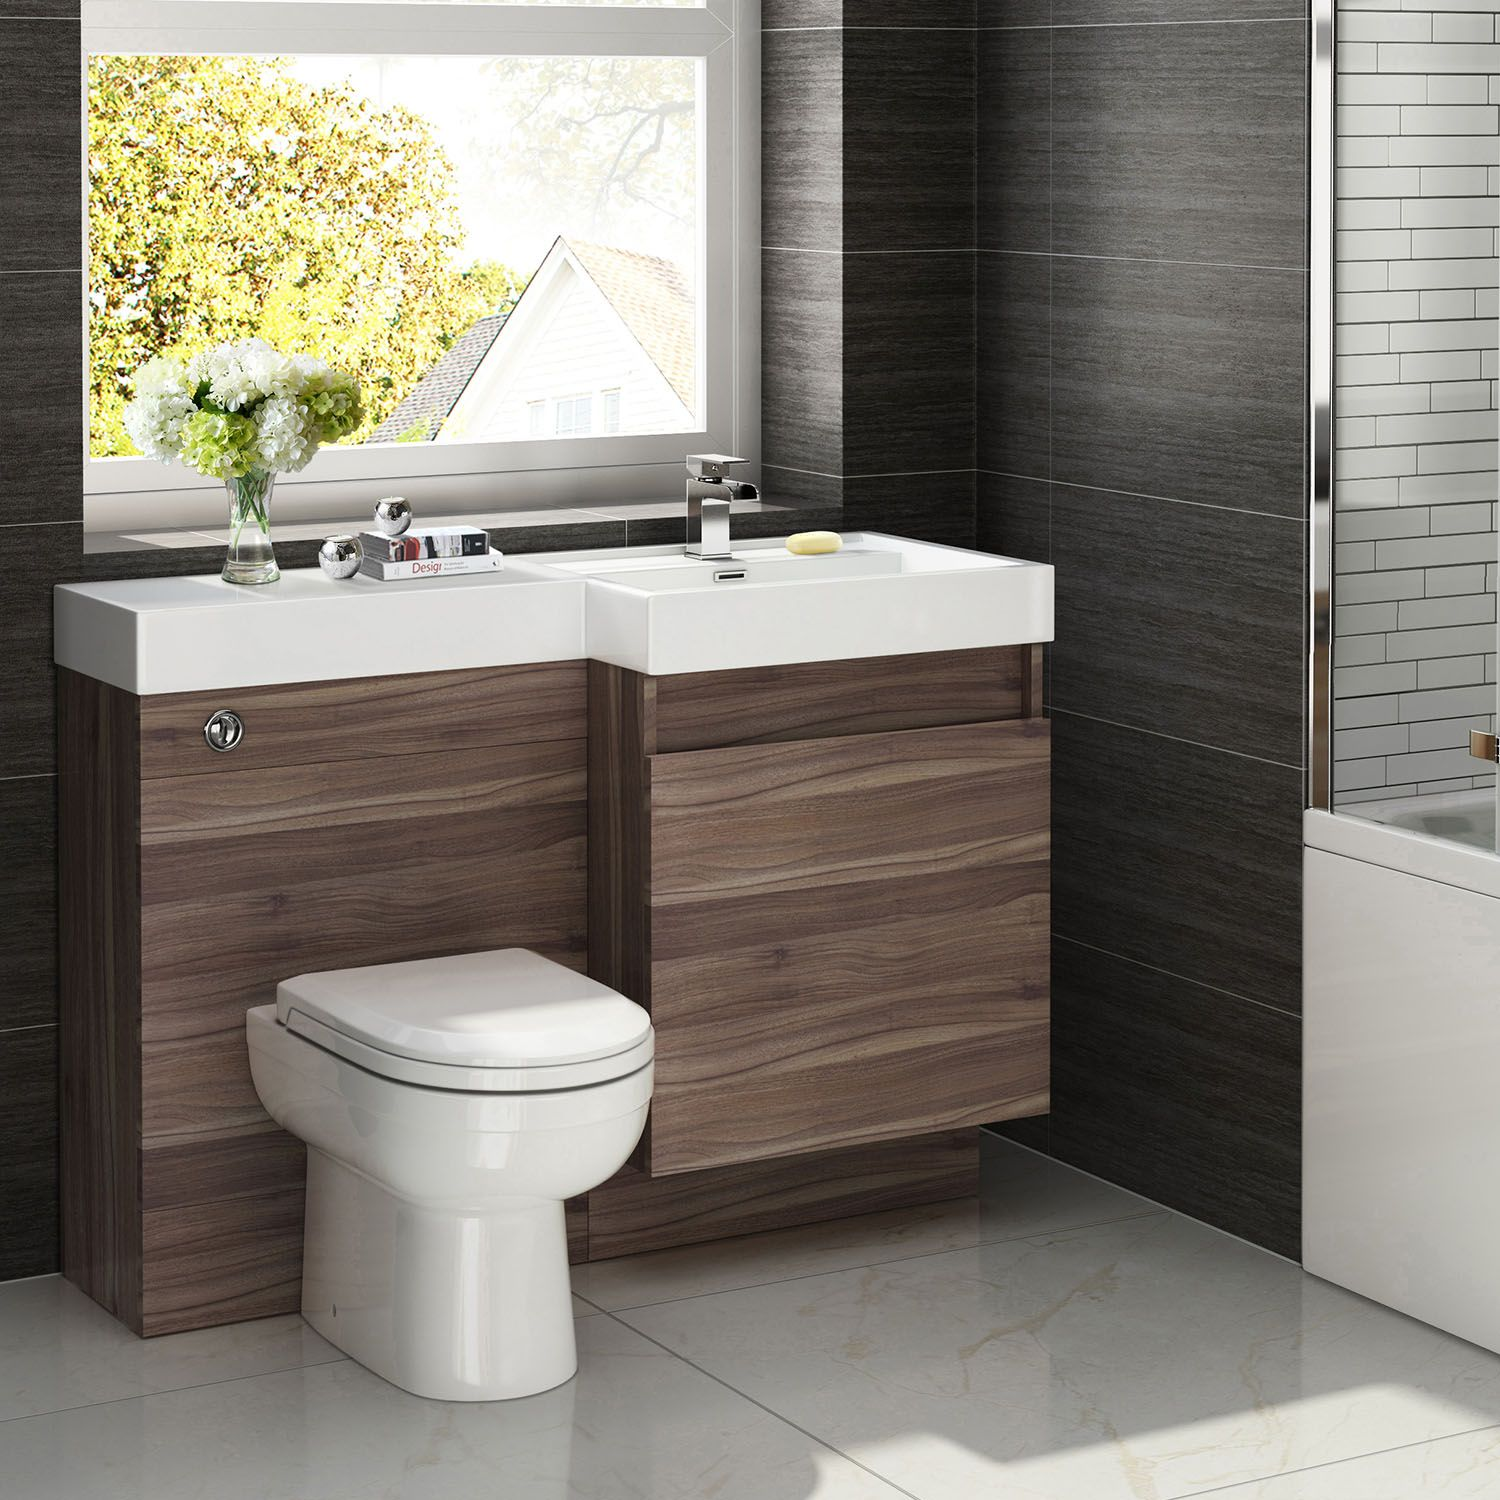 Conterporay Bathroom Vanities And Sinks Atlanta With Modern Chrome Faucet Walnut Finish